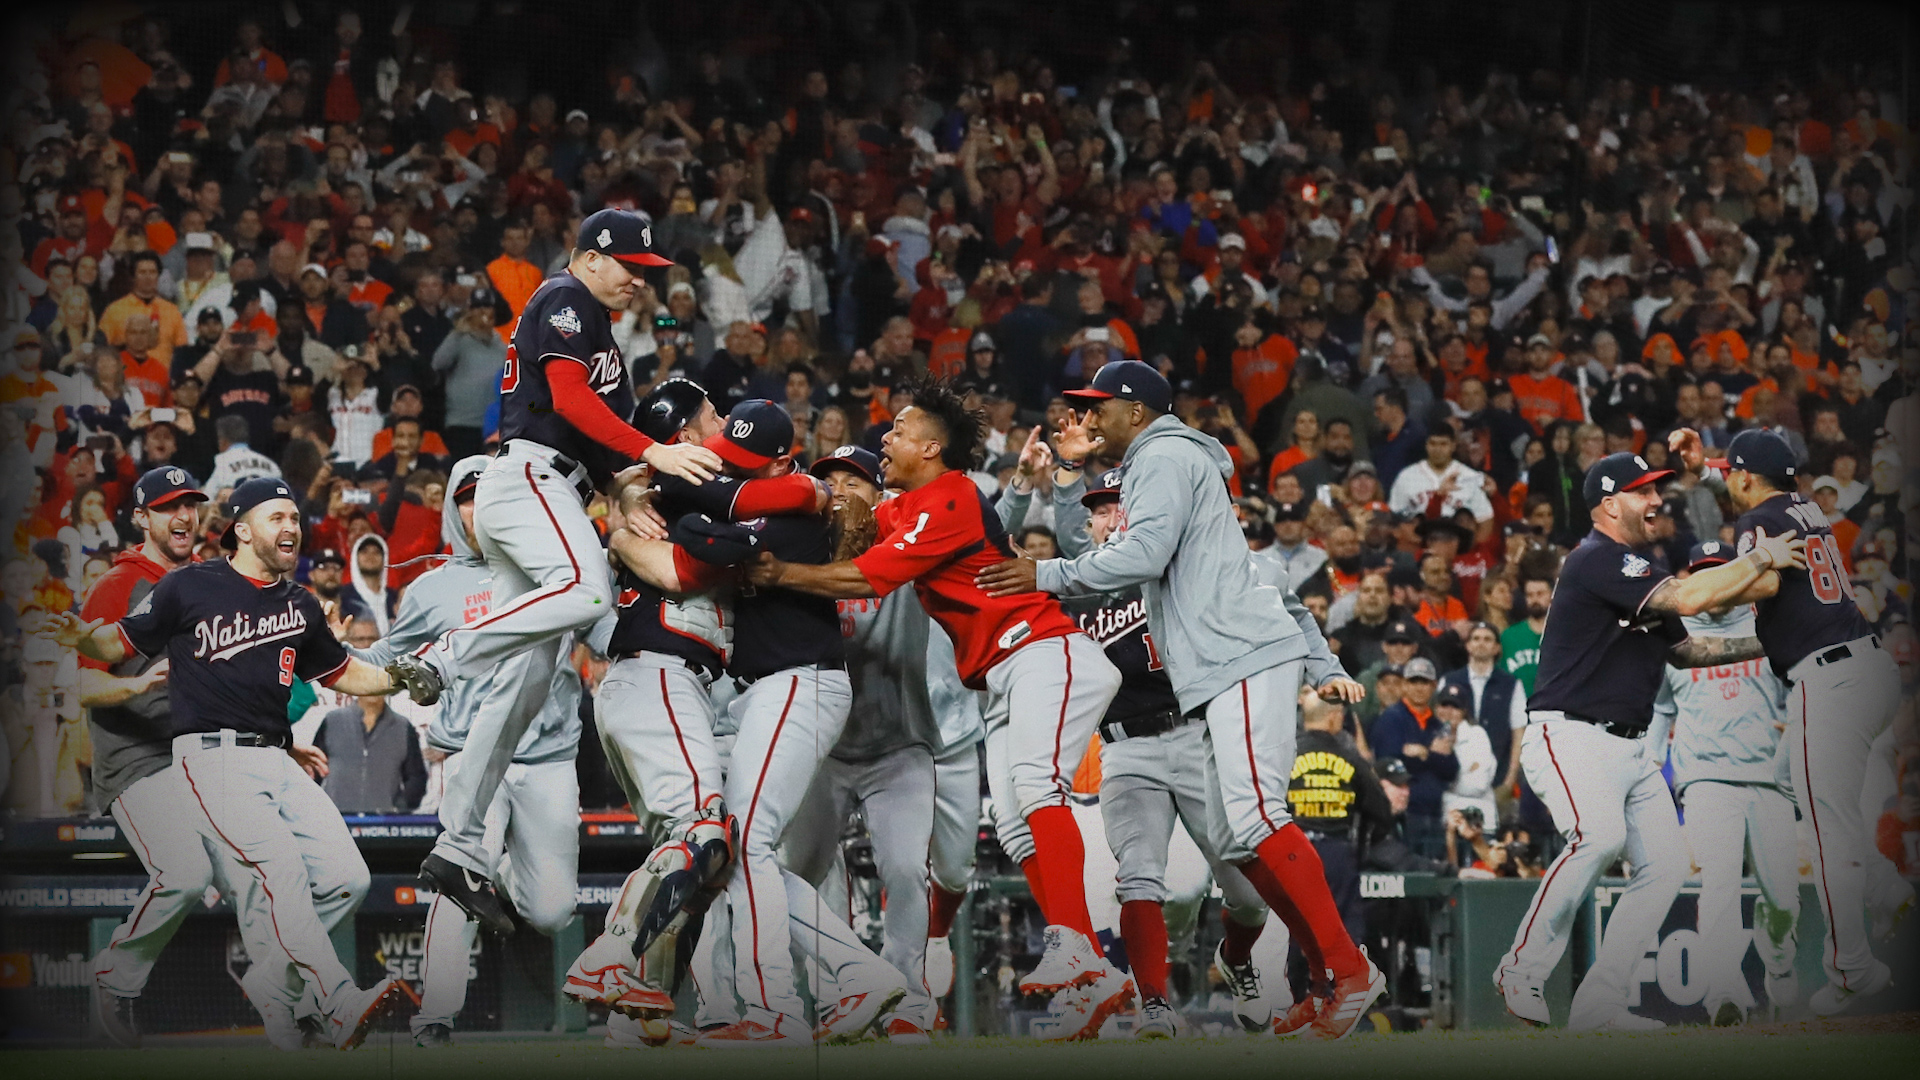 A baseball miracle or a deal with the devil? Nah, it was just Nationals baseball.